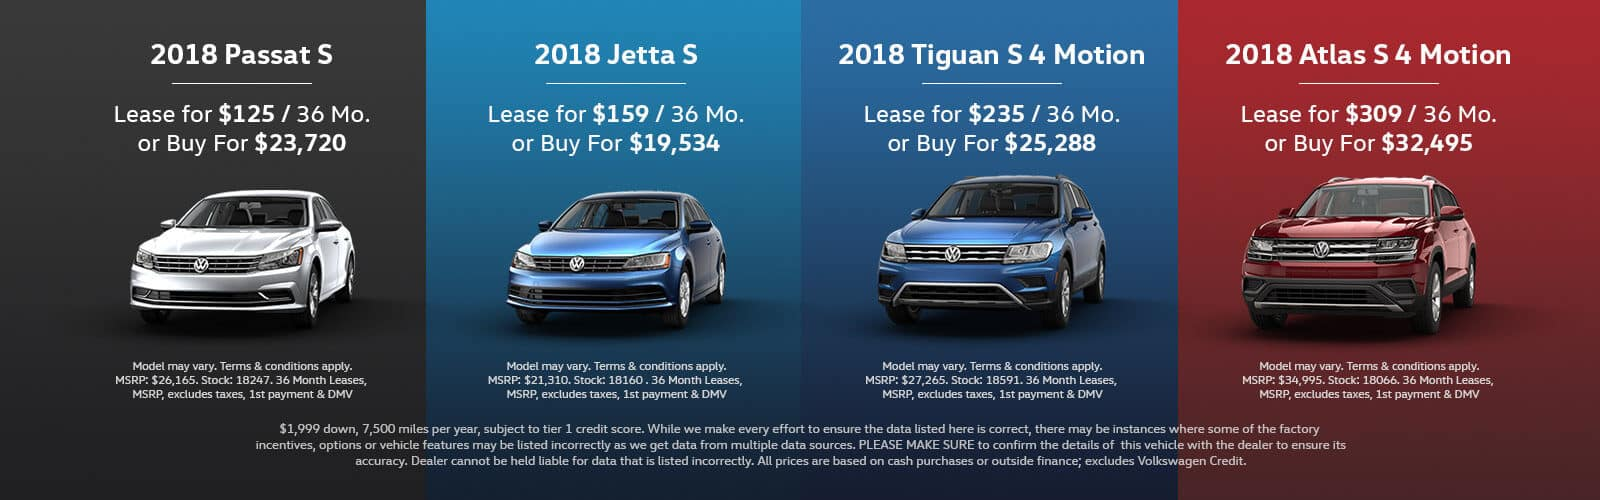 vw-lease-offers-banner